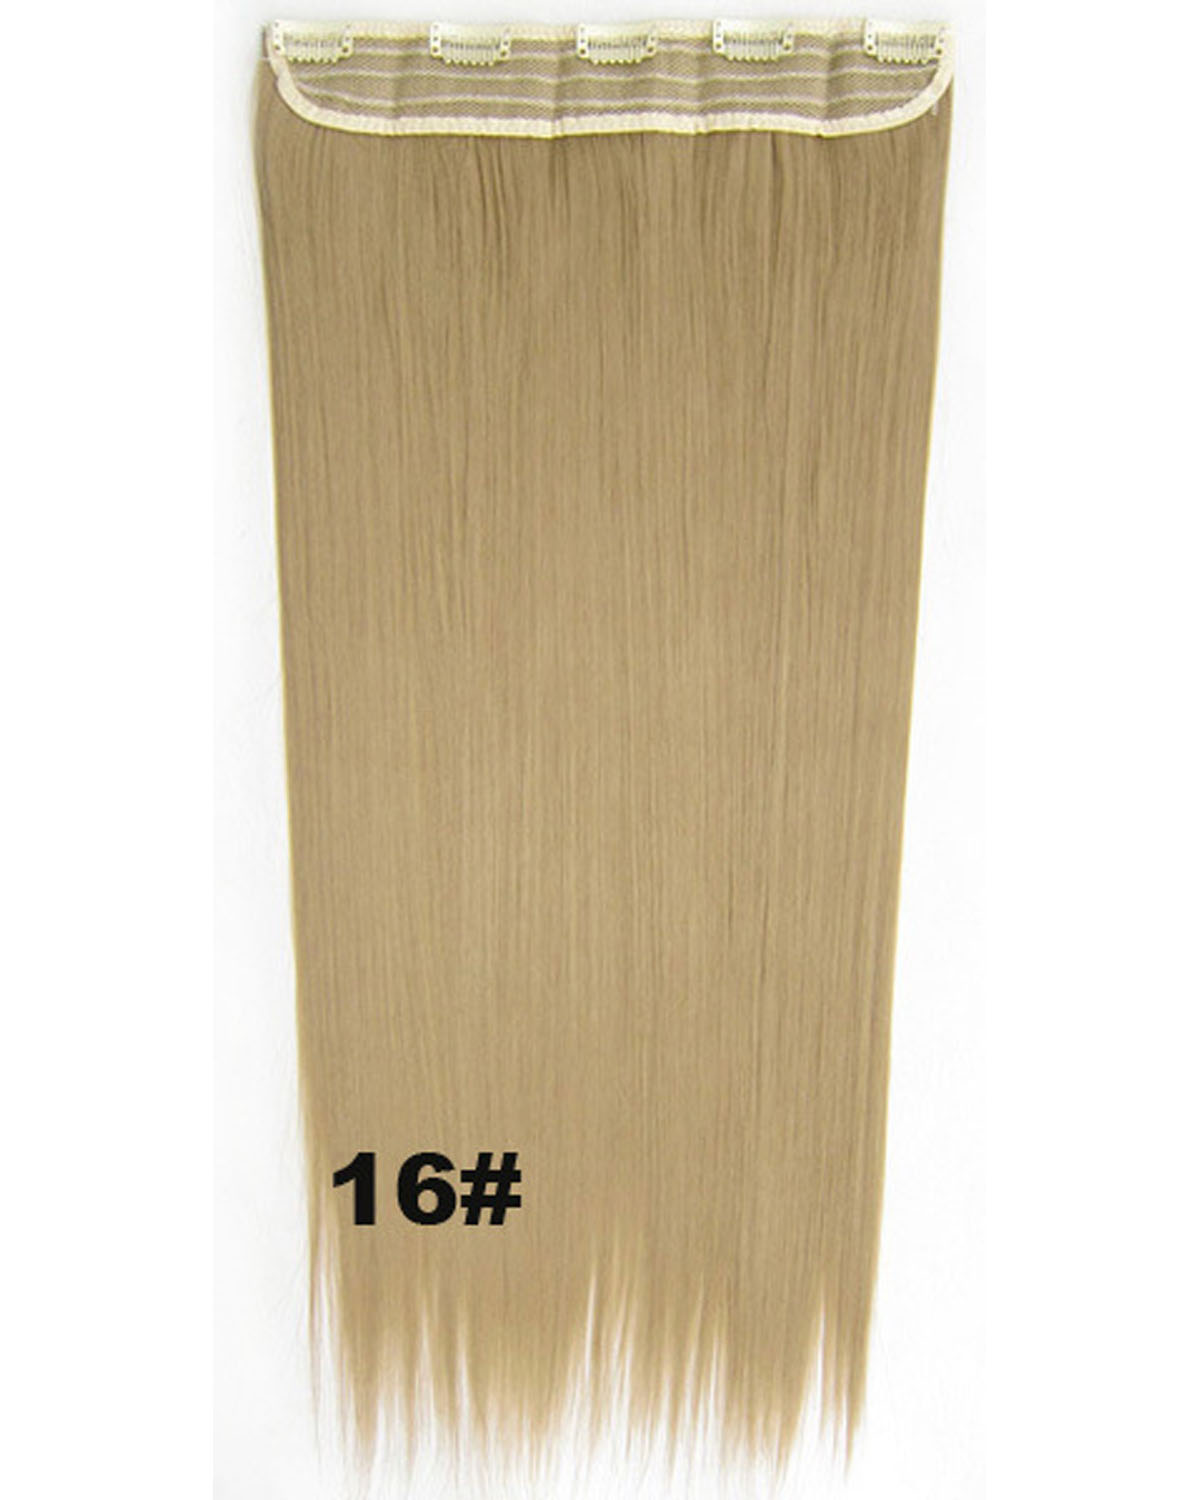 24 inch Vivid  Straight Long One Piece 5 Clips Clip in Synthetic Hair Extension 16#